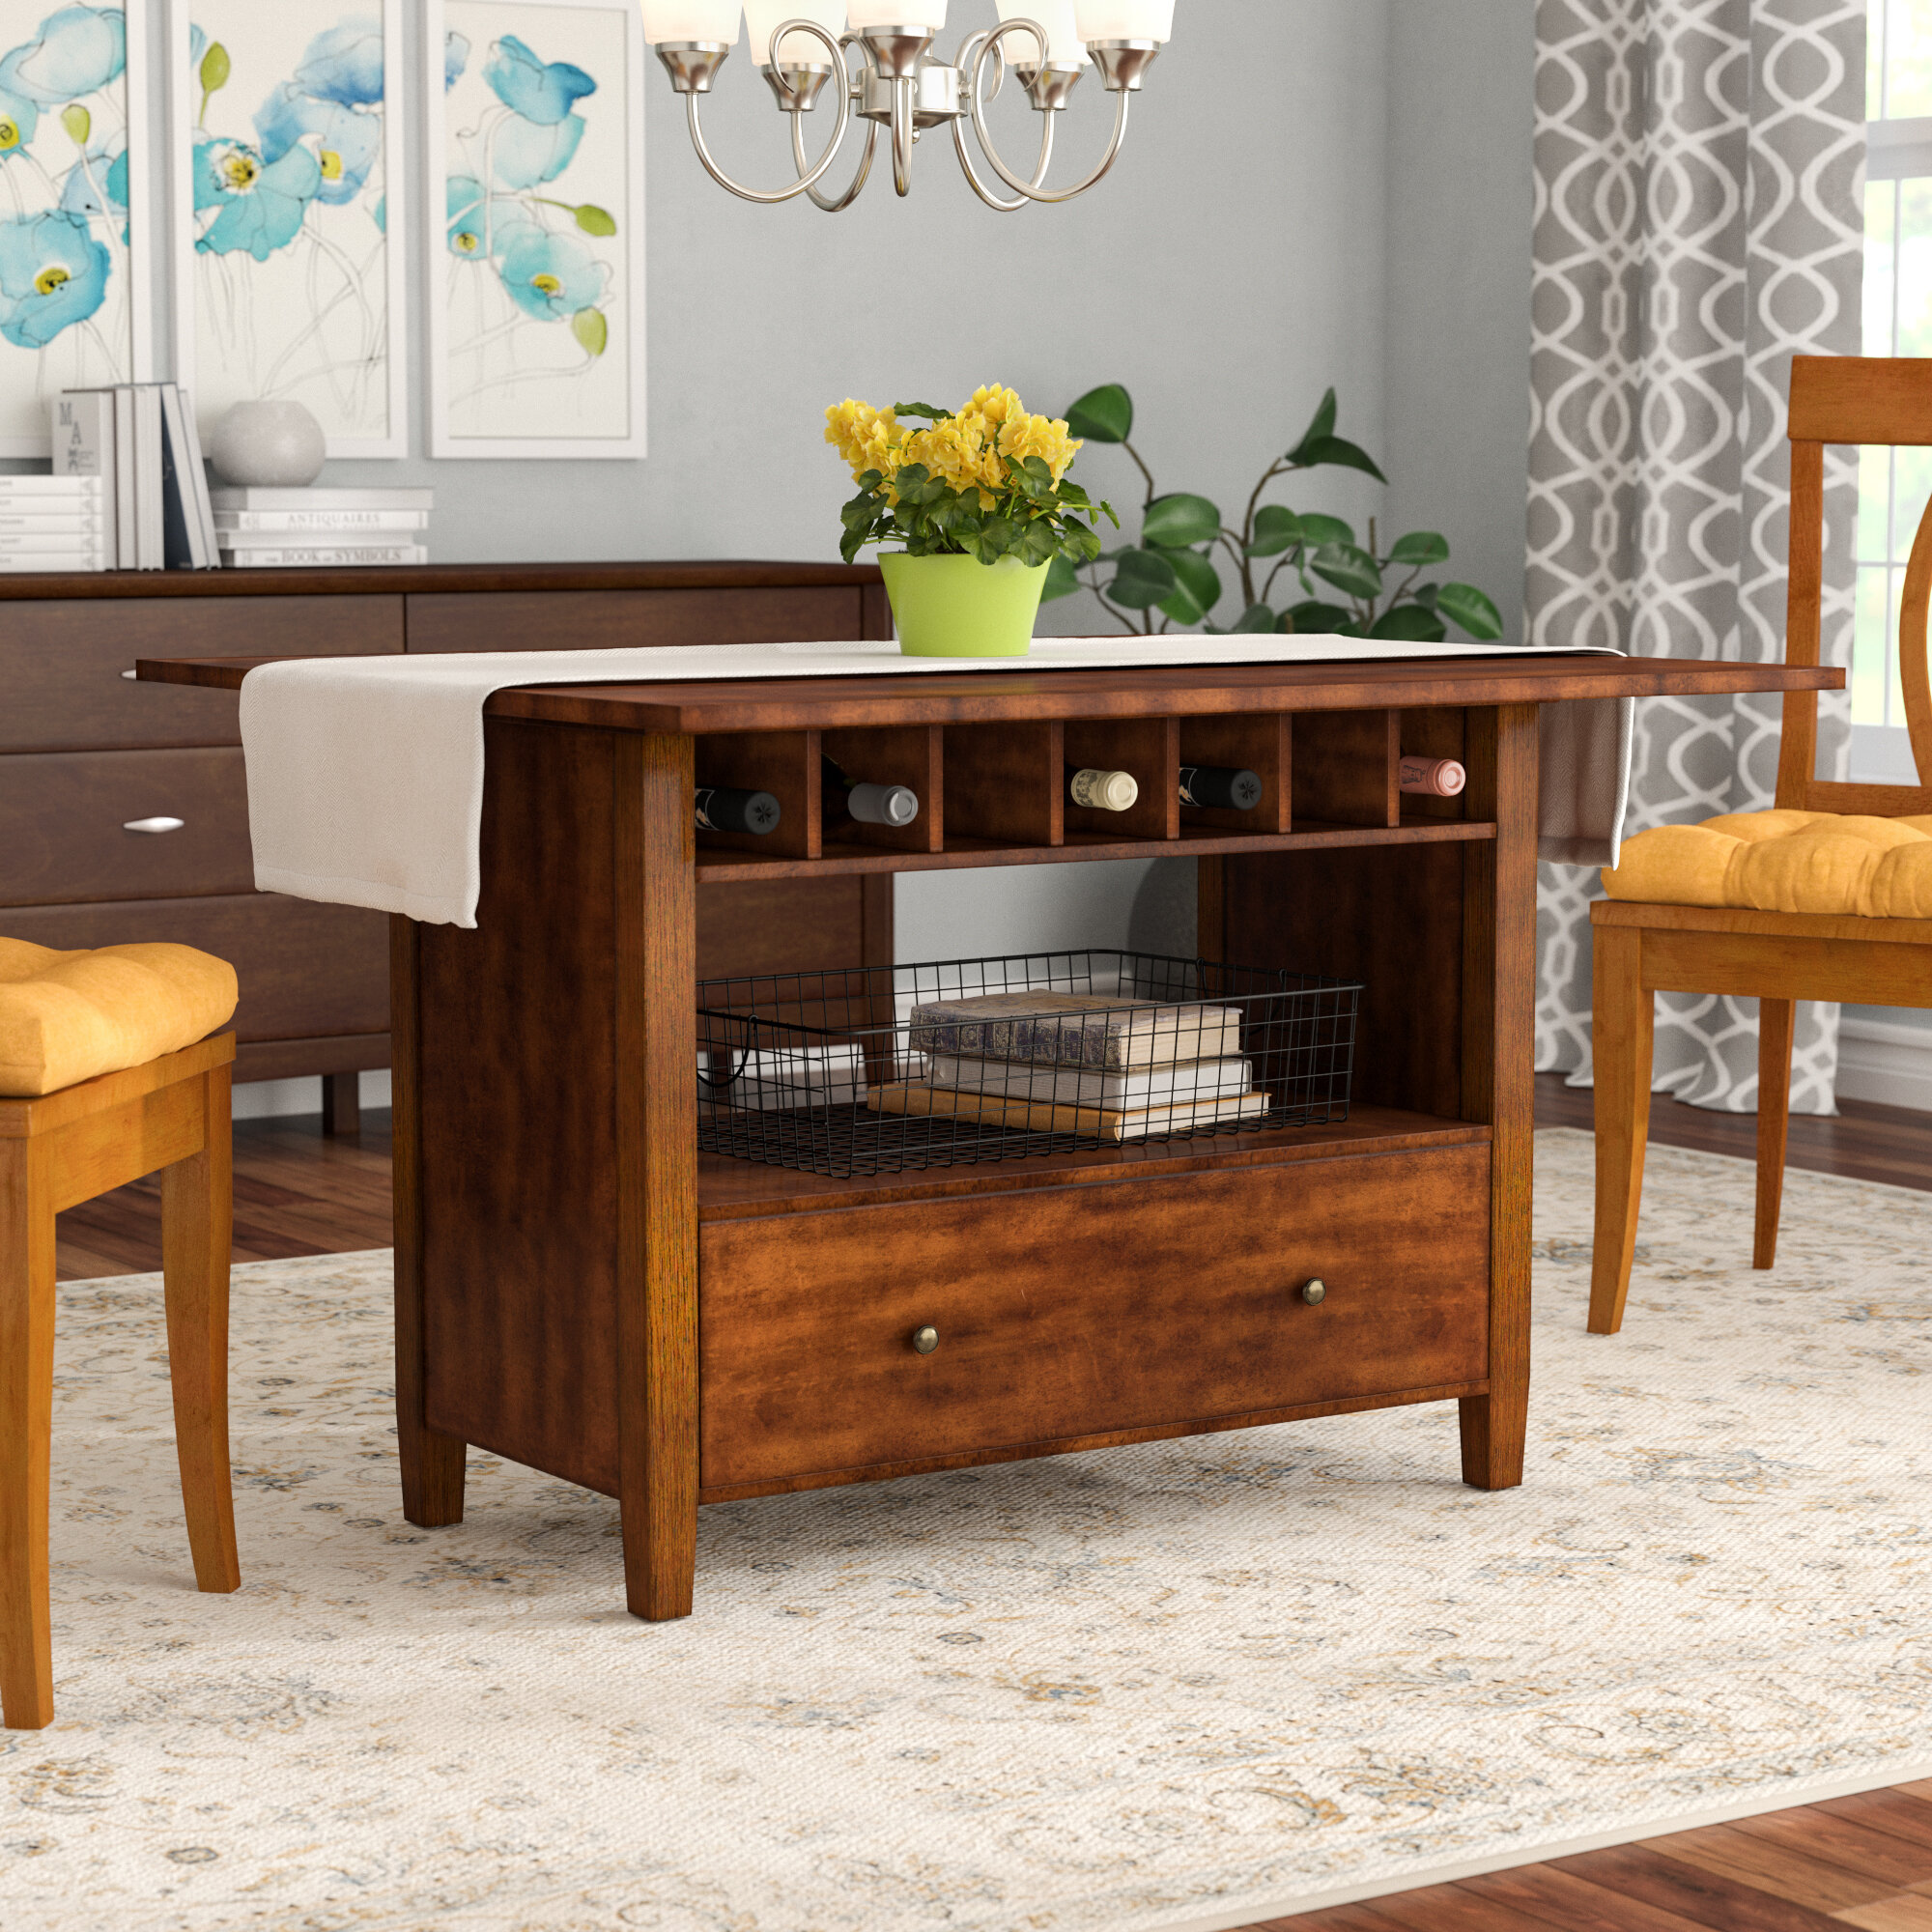 Super Drop Leaf Dining Tables Youll Love In 2019 Wayfair Interior Design Ideas Philsoteloinfo